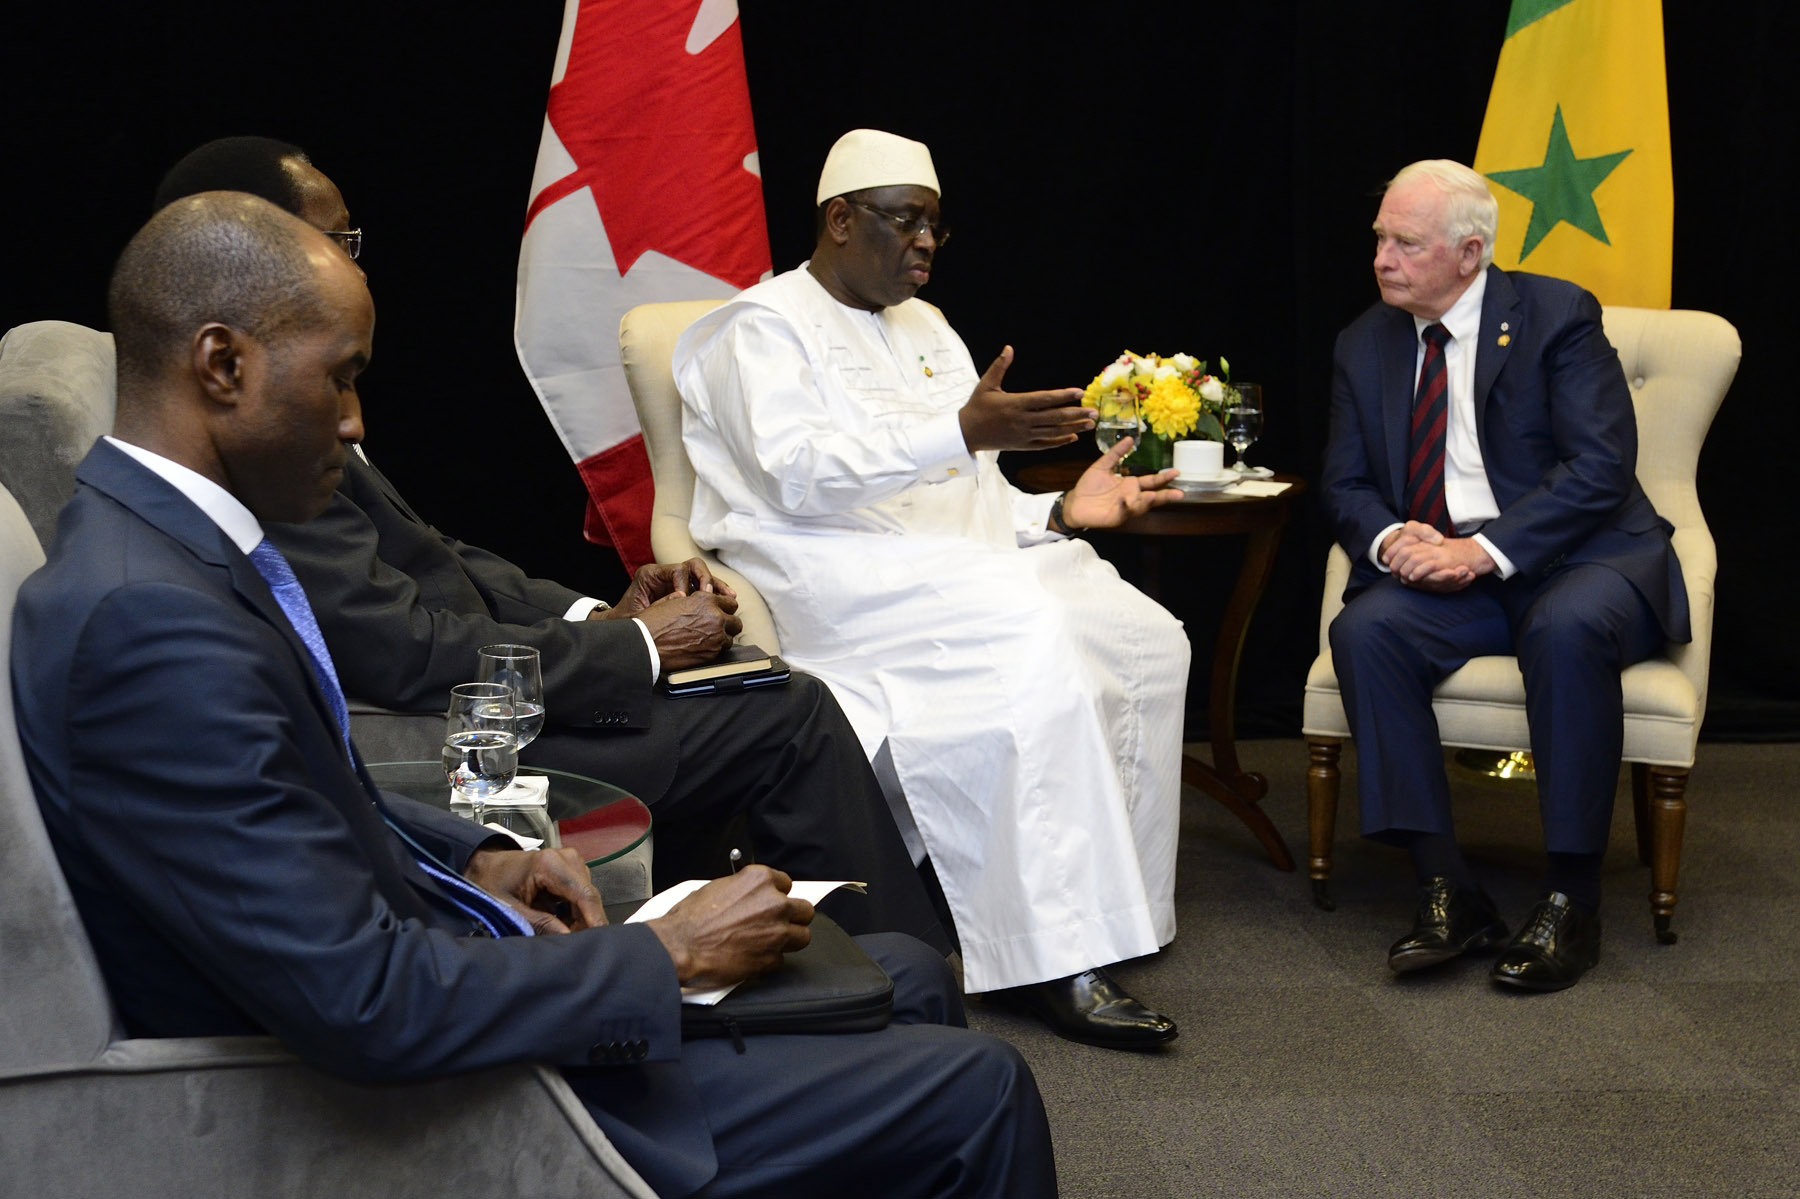 His Excellency concluded his bilateral meetings with Macky Sall, President of the Republic of Senegal.